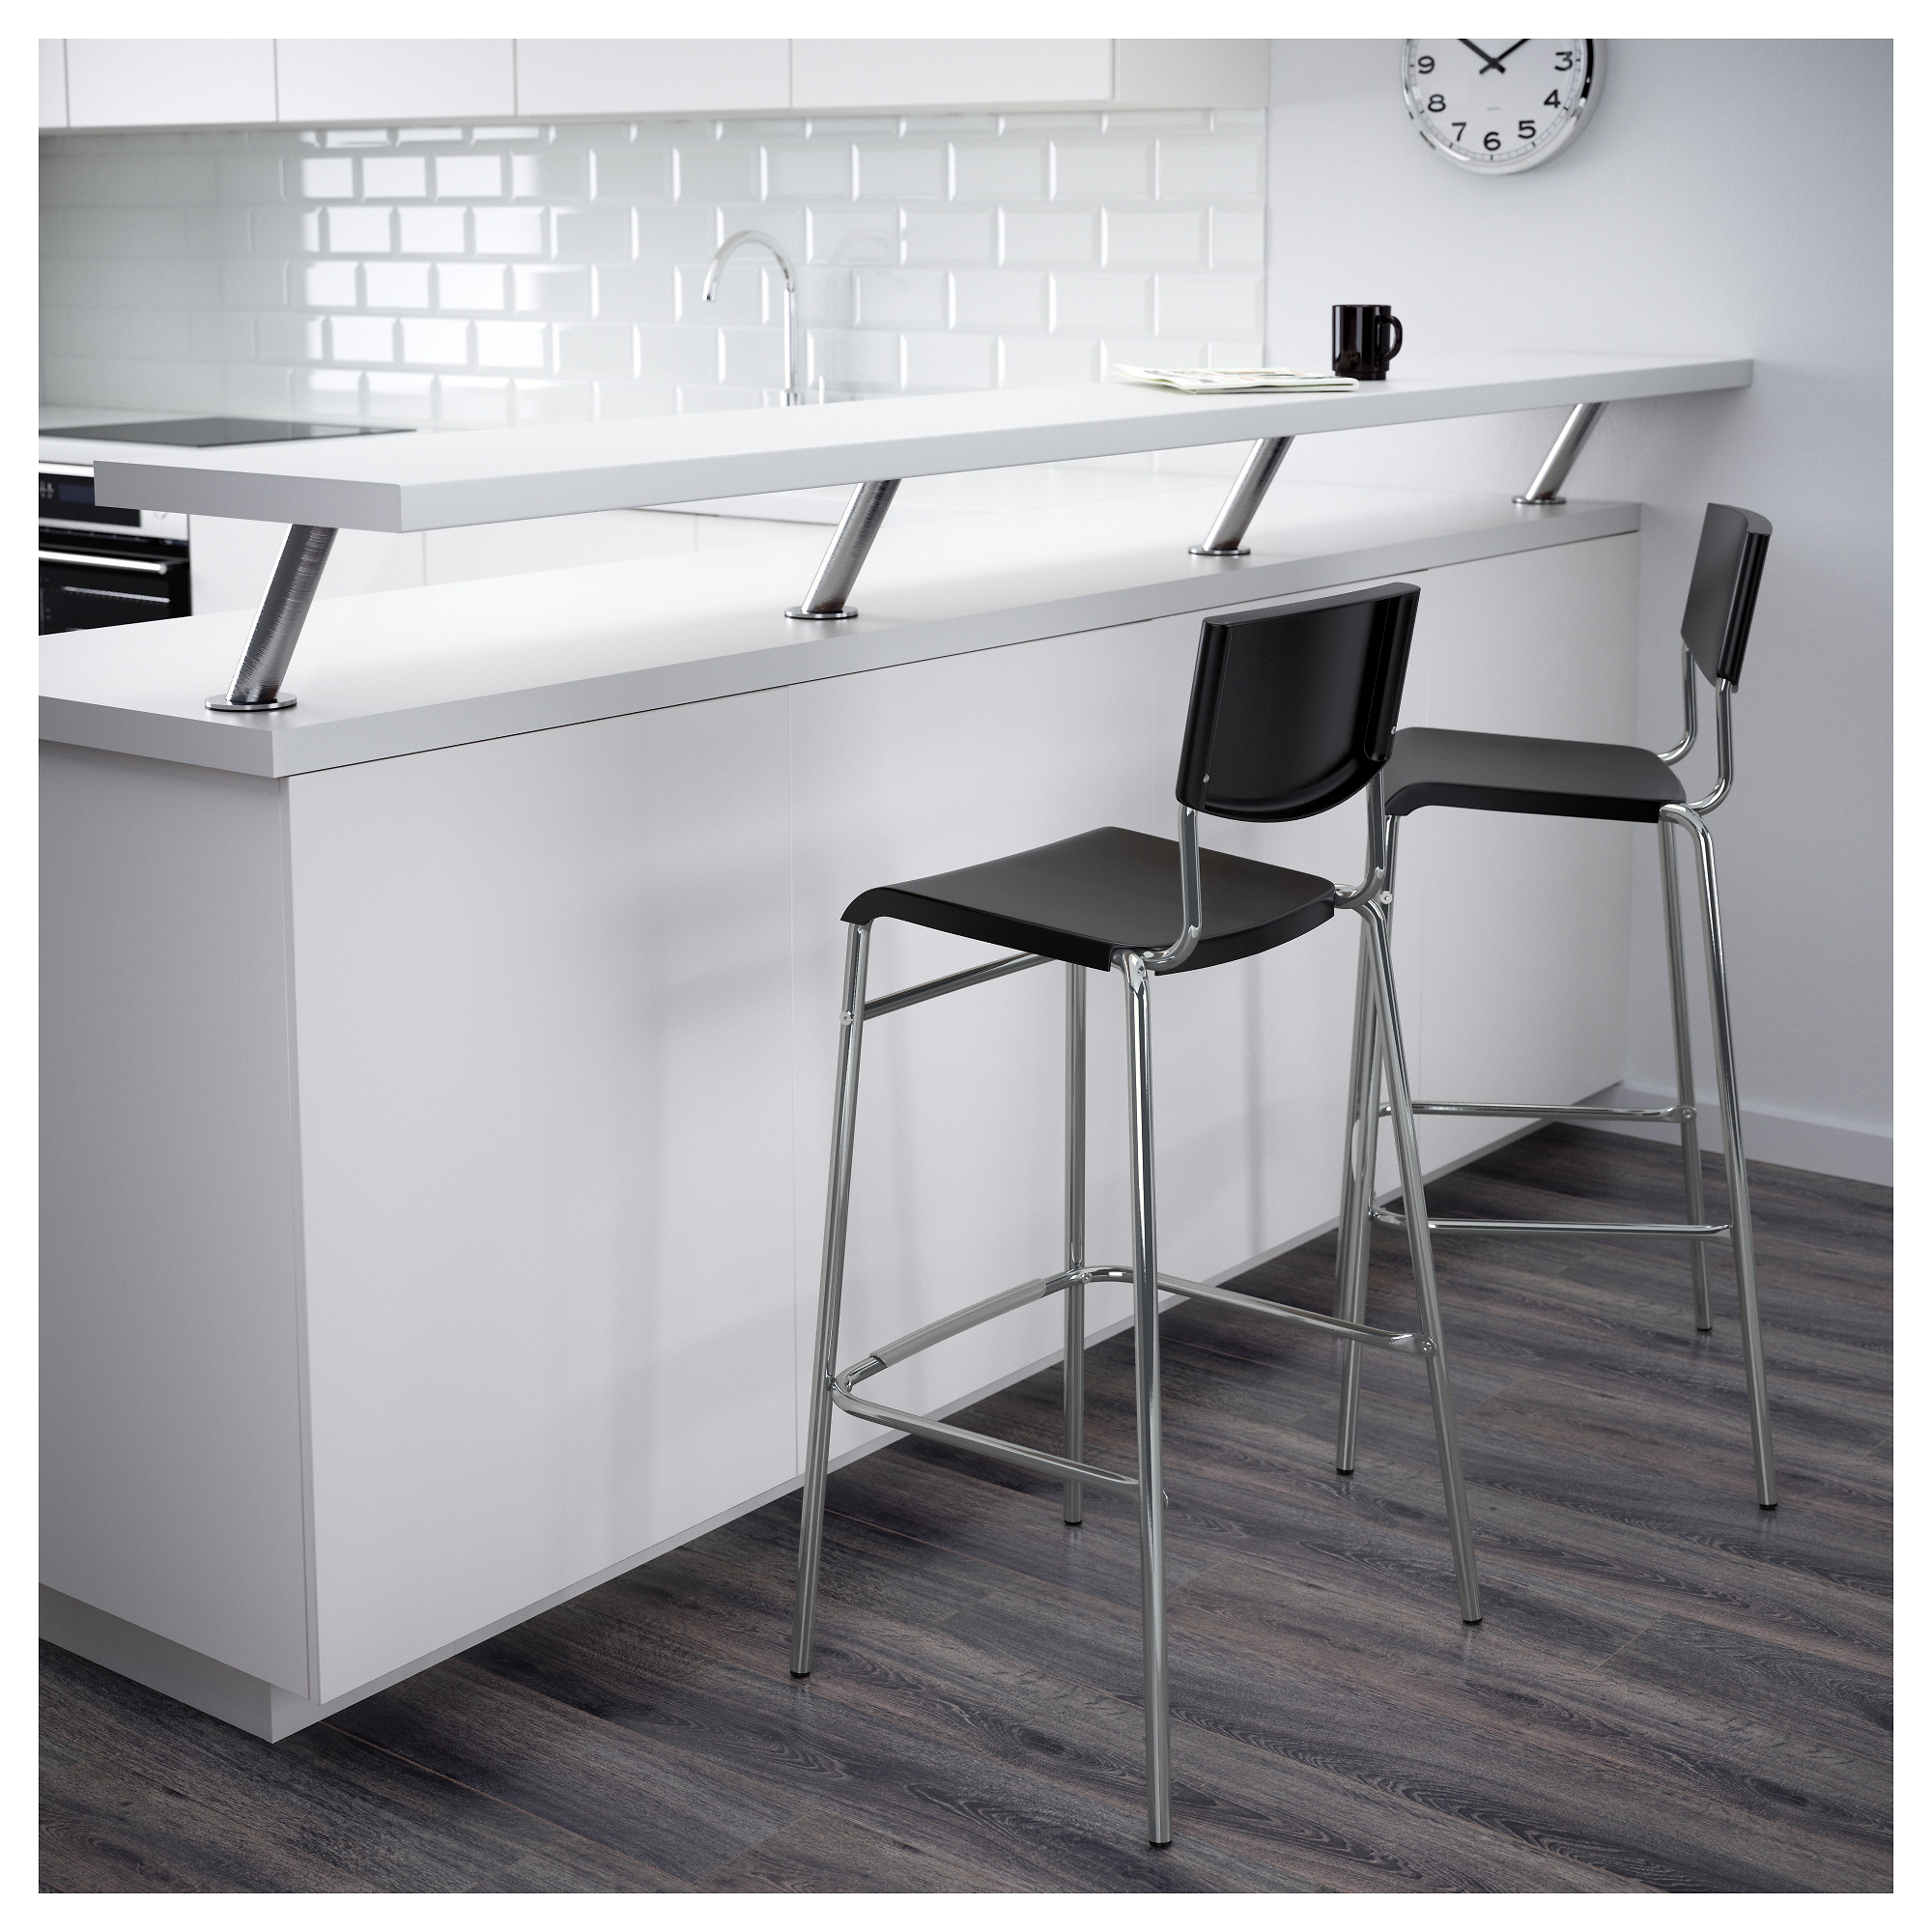 & STIG Bar stool with backrest - 24 3/4